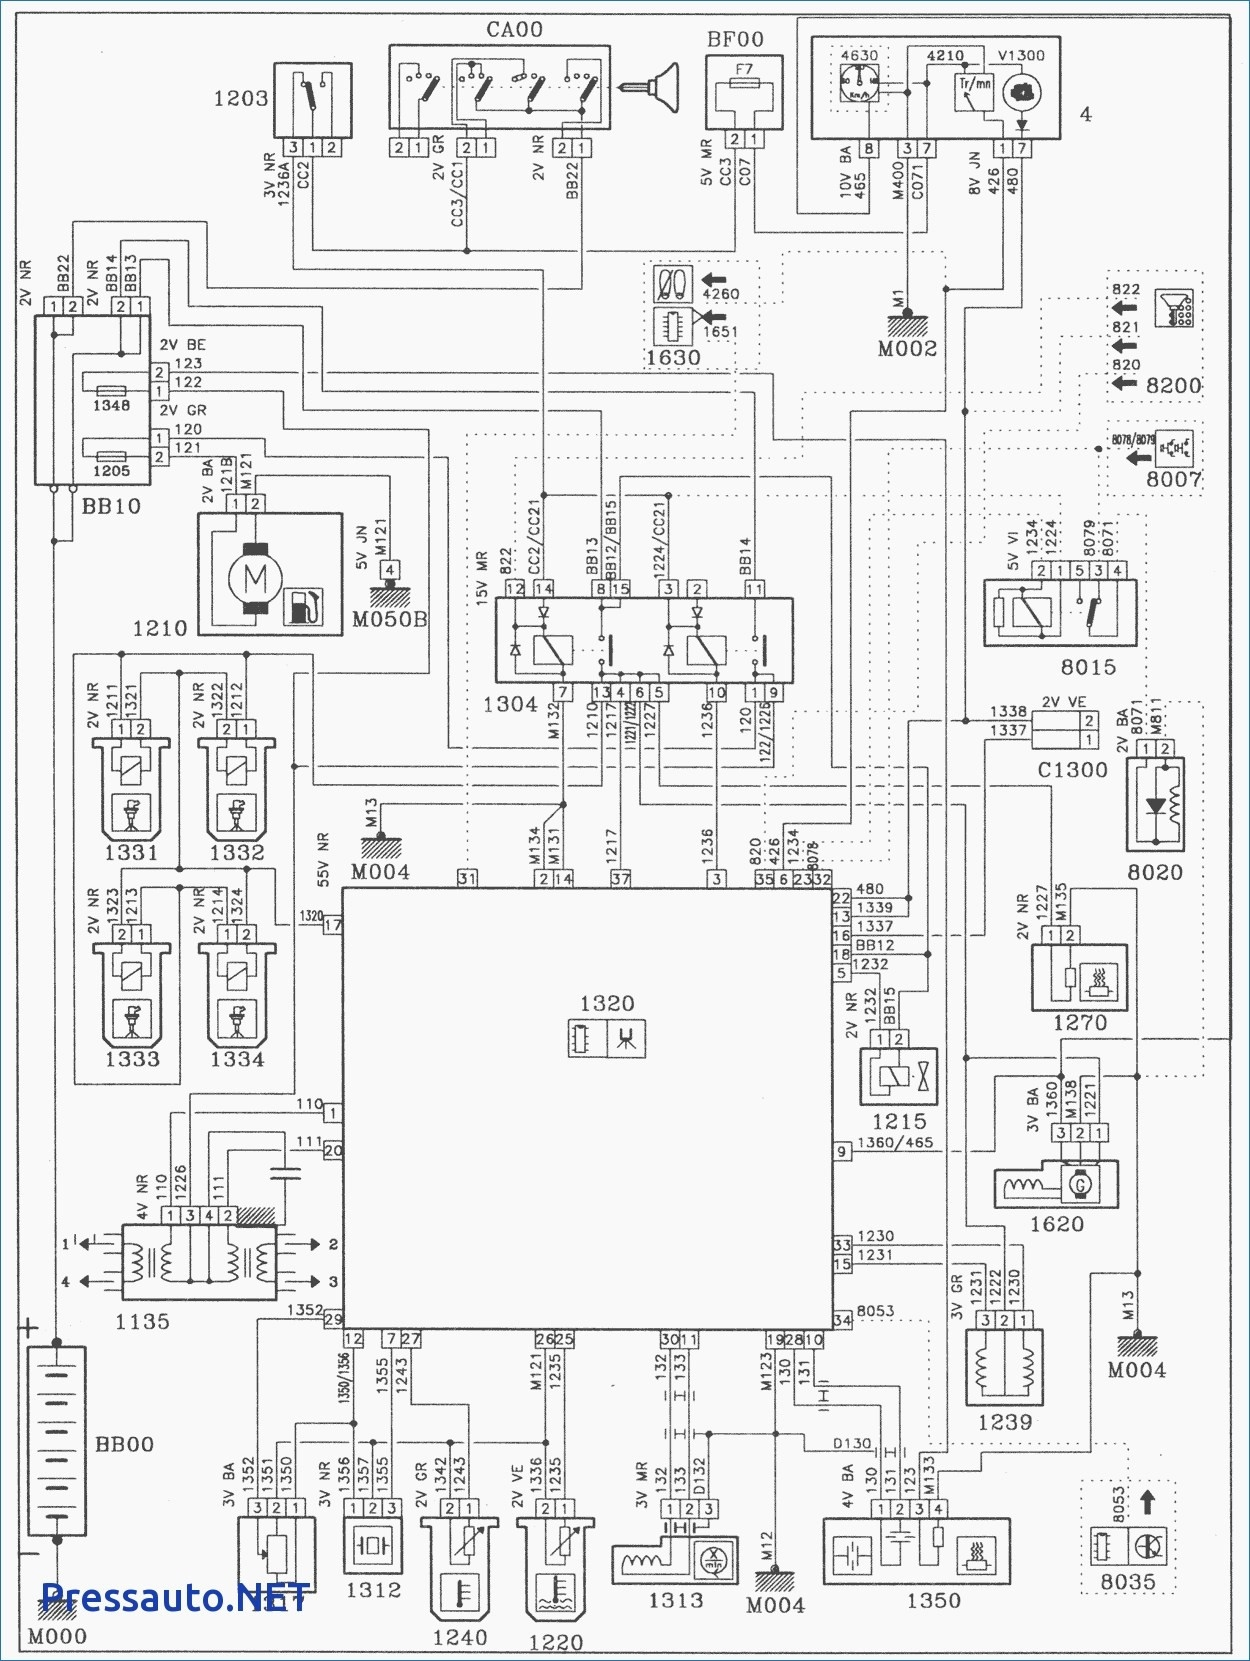 modine wiring diagram pdf newair g73 wiring diagram | free wiring diagram